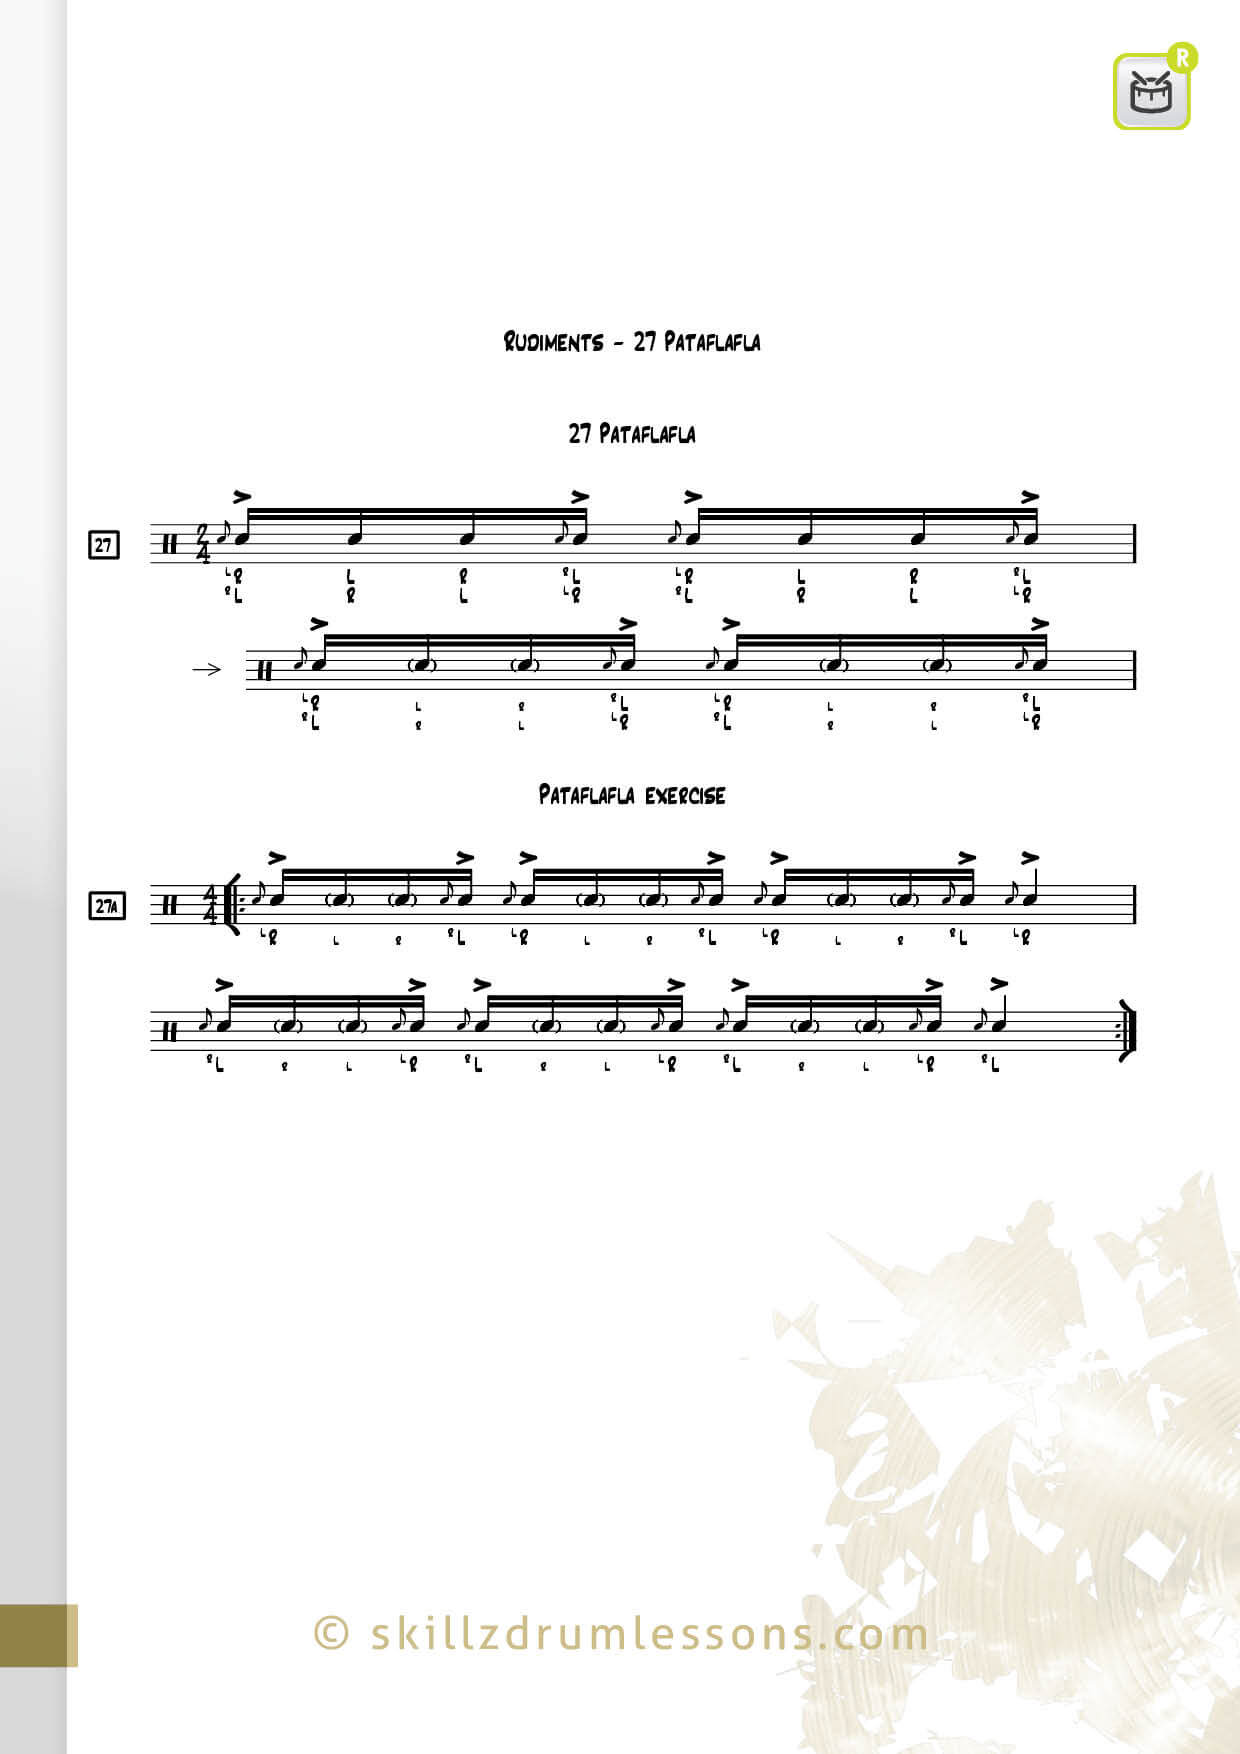 This is an image of the Official 40 Essential P.A.S. Rudiments #27 The Pataflafla by Skillz Drum Lessons